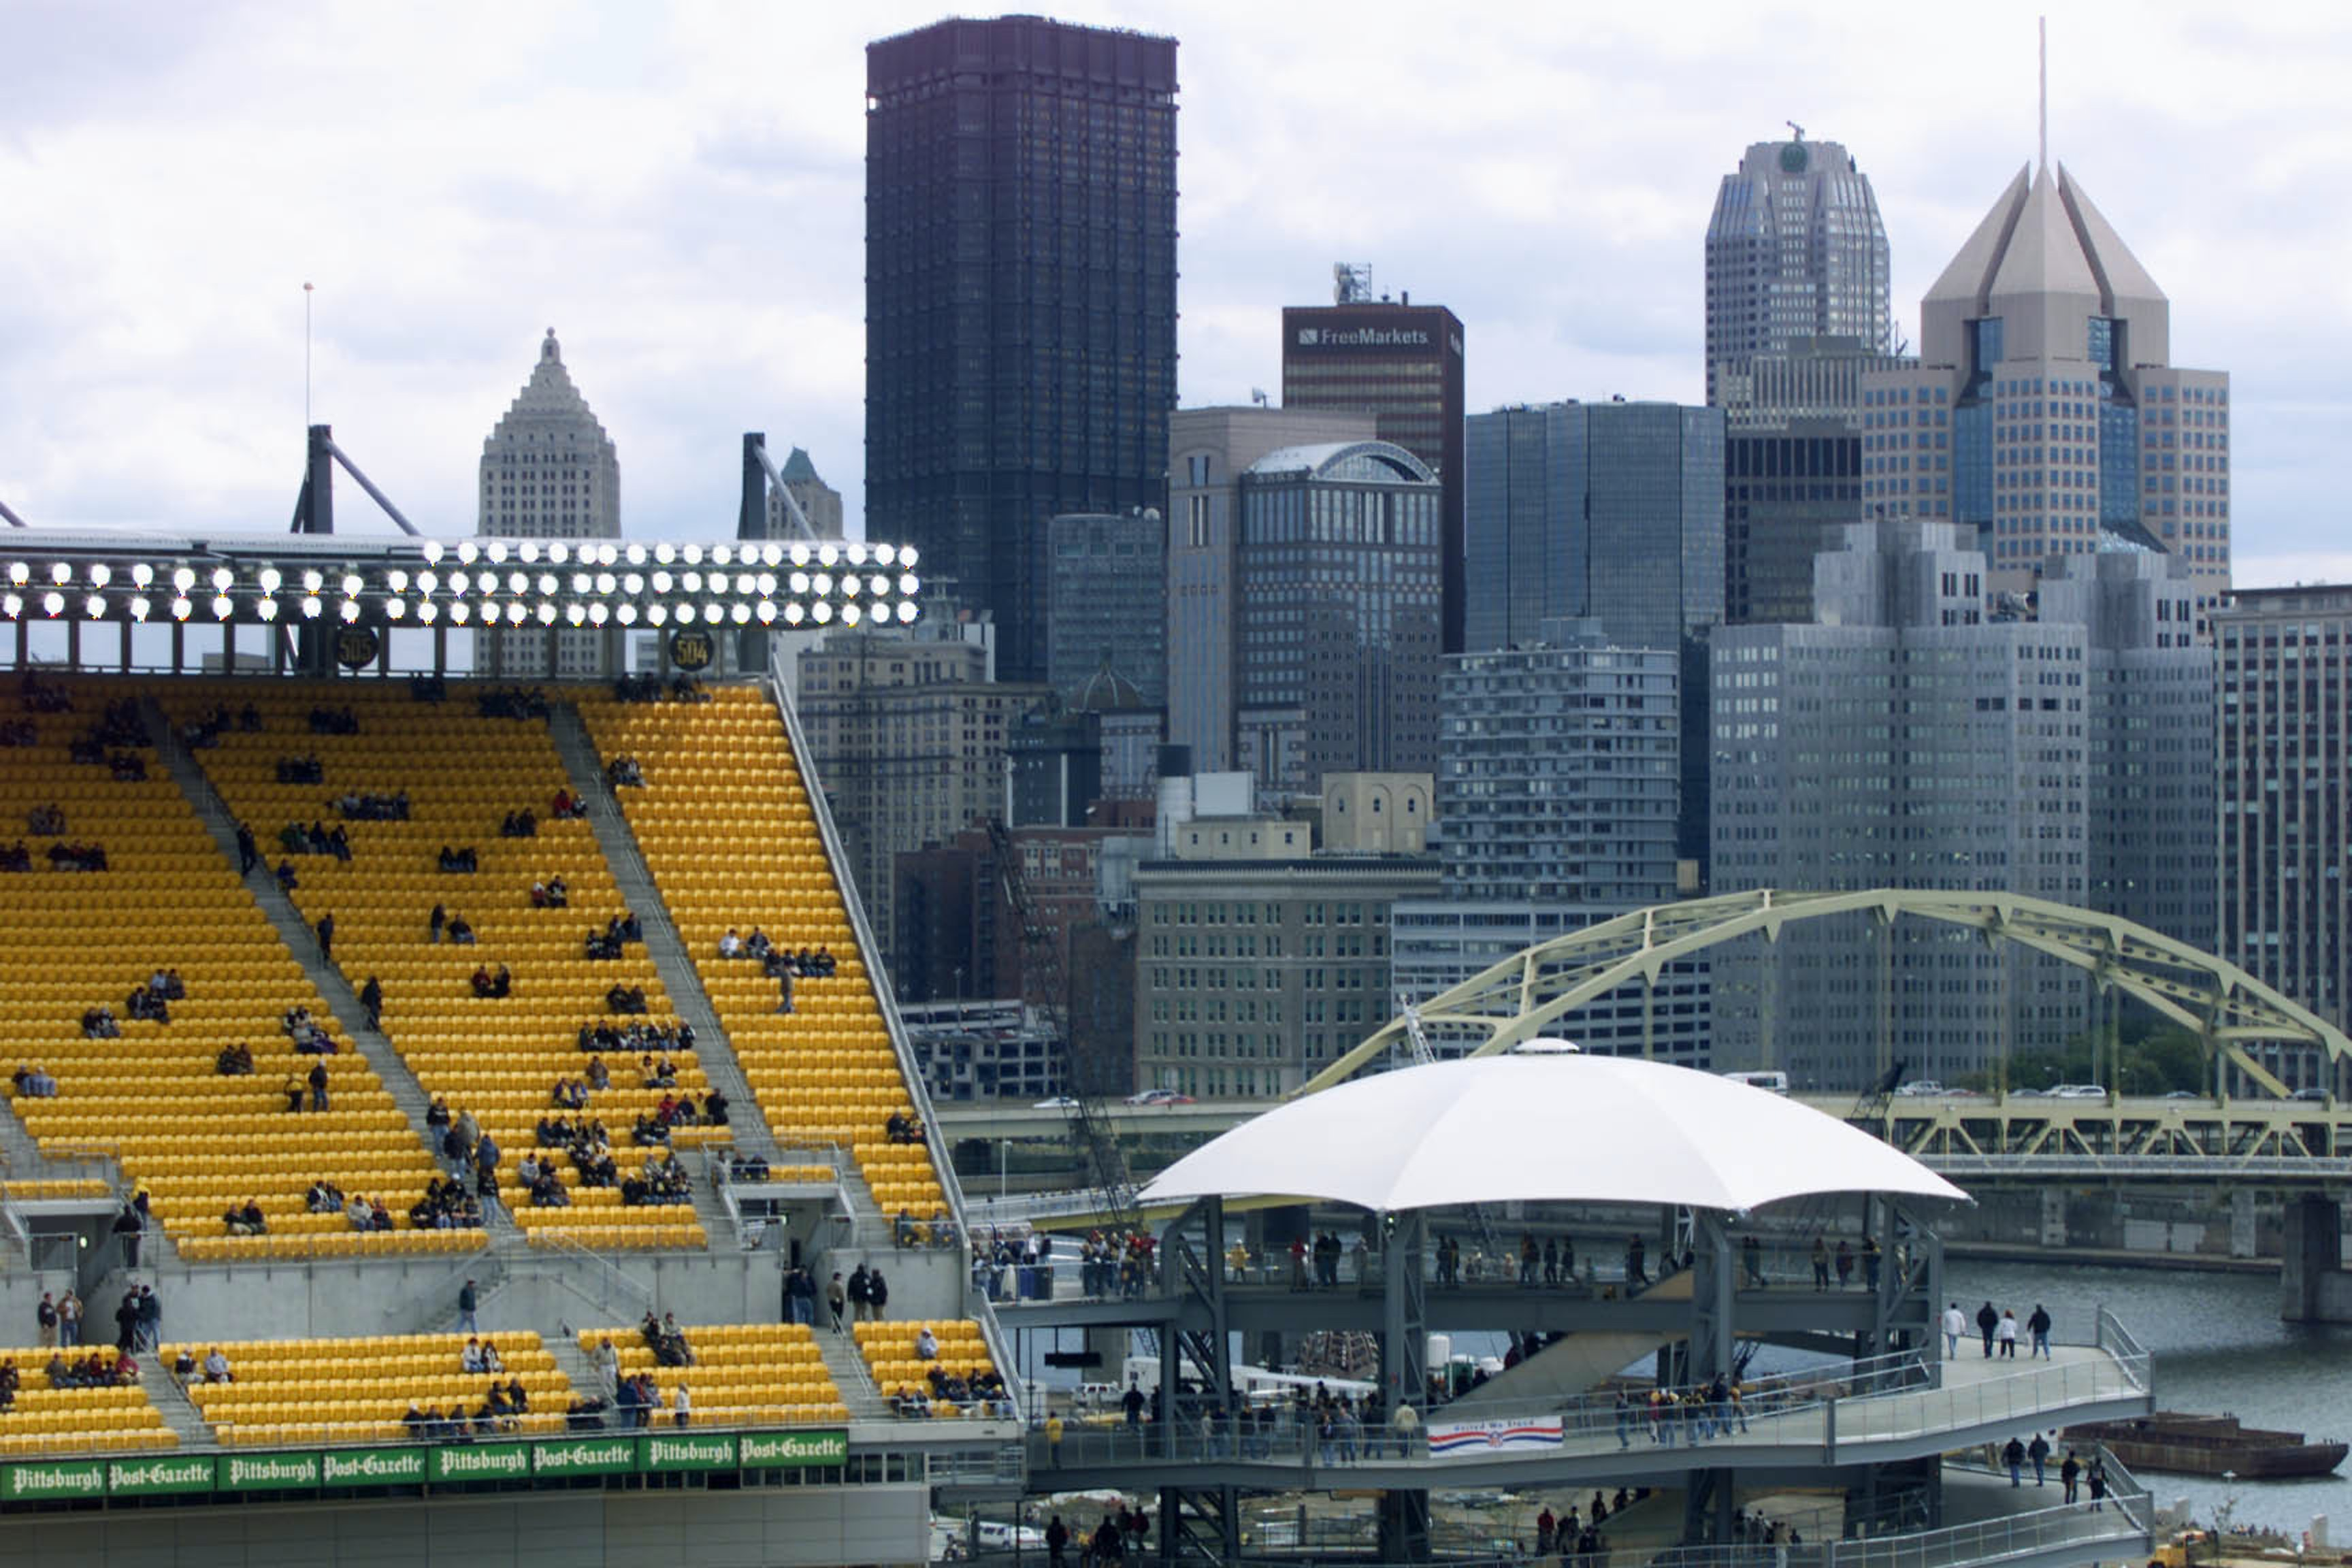 Pittsburgh was the first city to receive Surtrac's system.